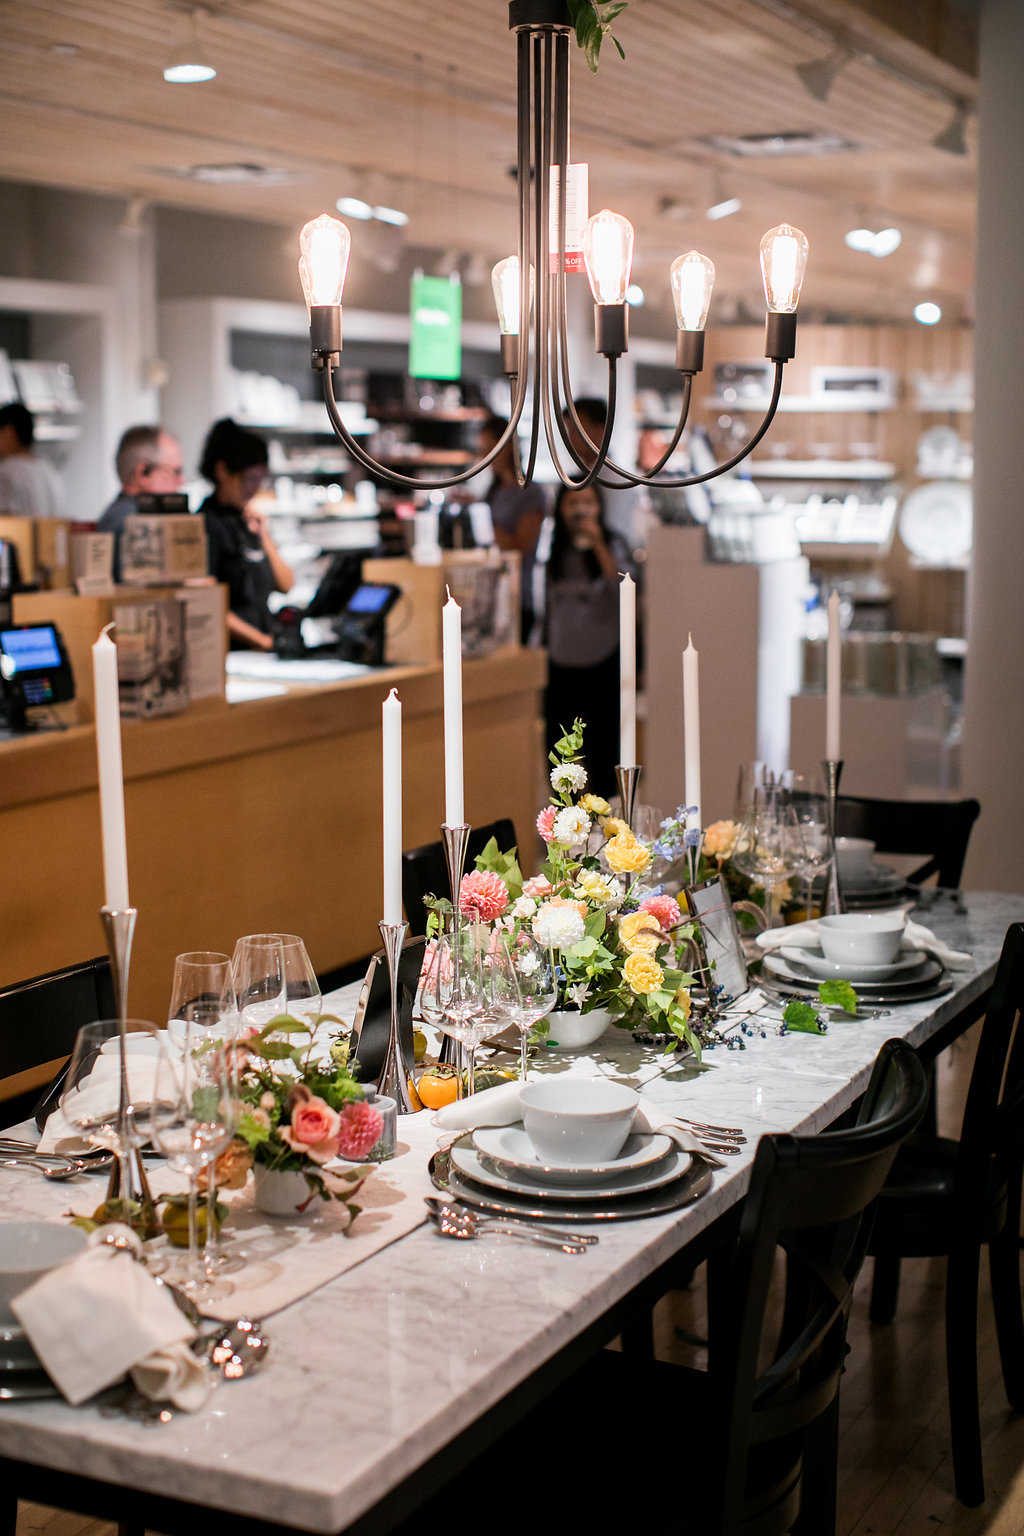 crate-and-barrel-cocktails-couture-jove-meyer-events-013.jpg